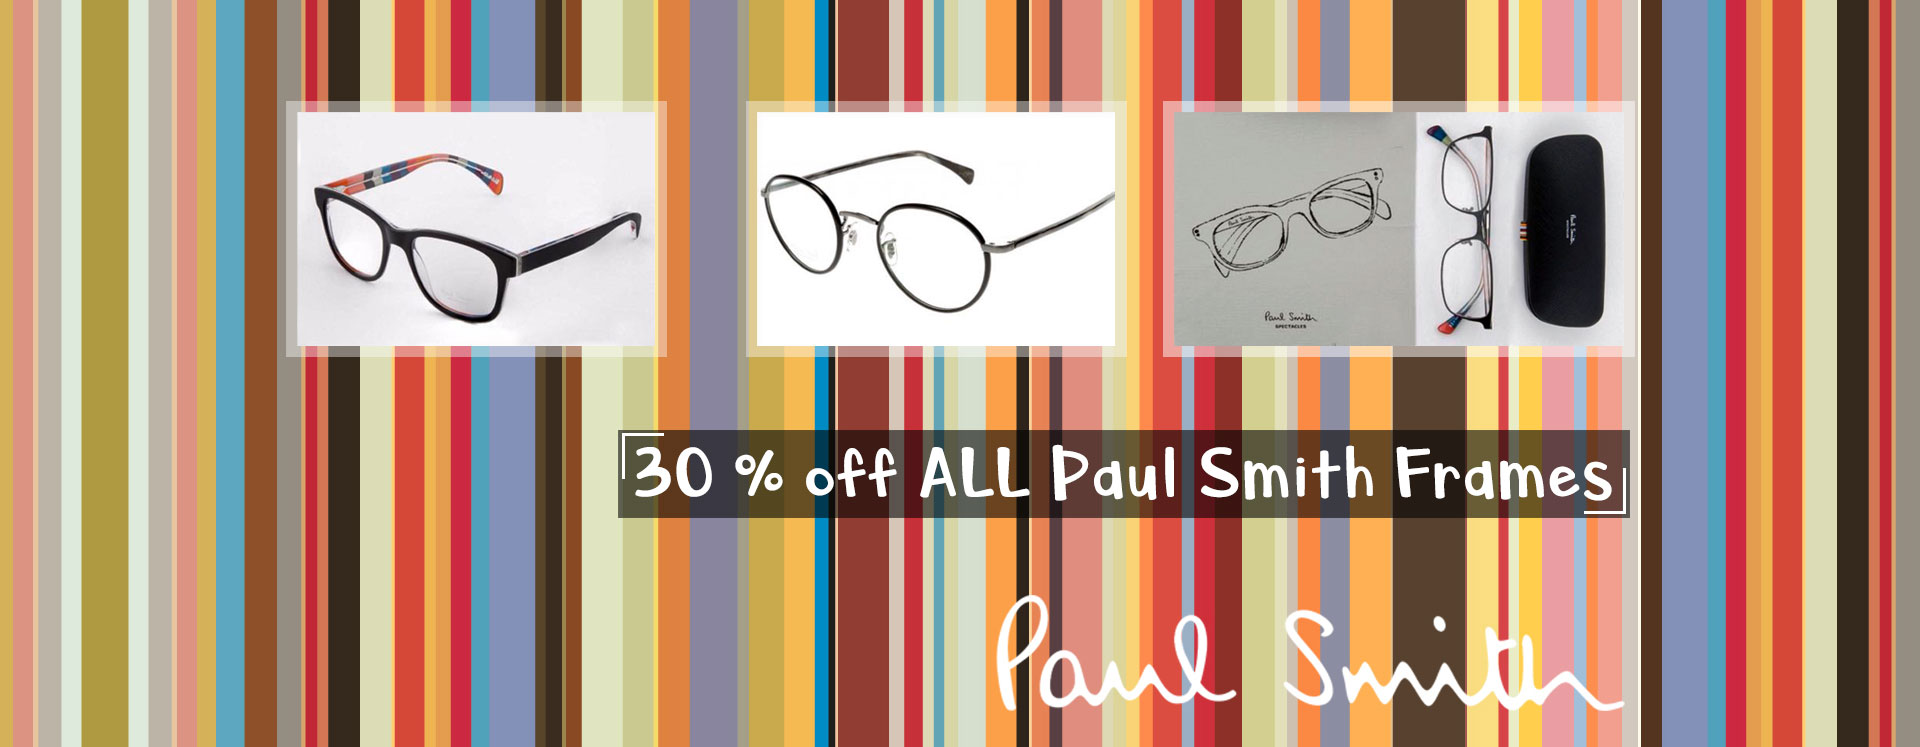 banner-paul-smith